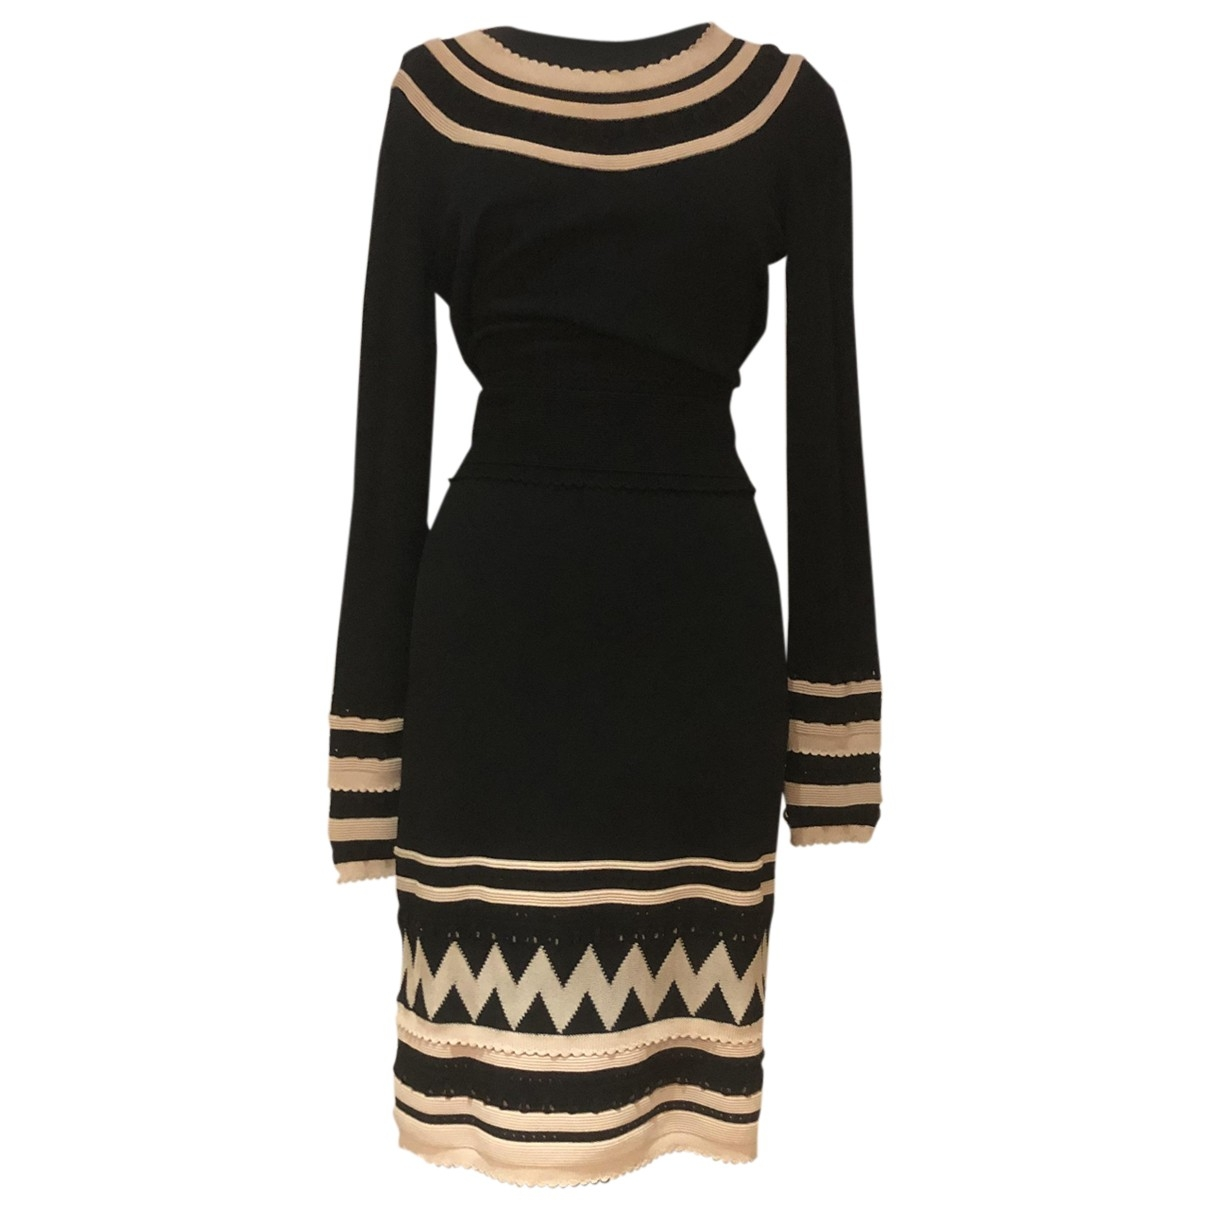 Temperley London \N Black dress for Women M International